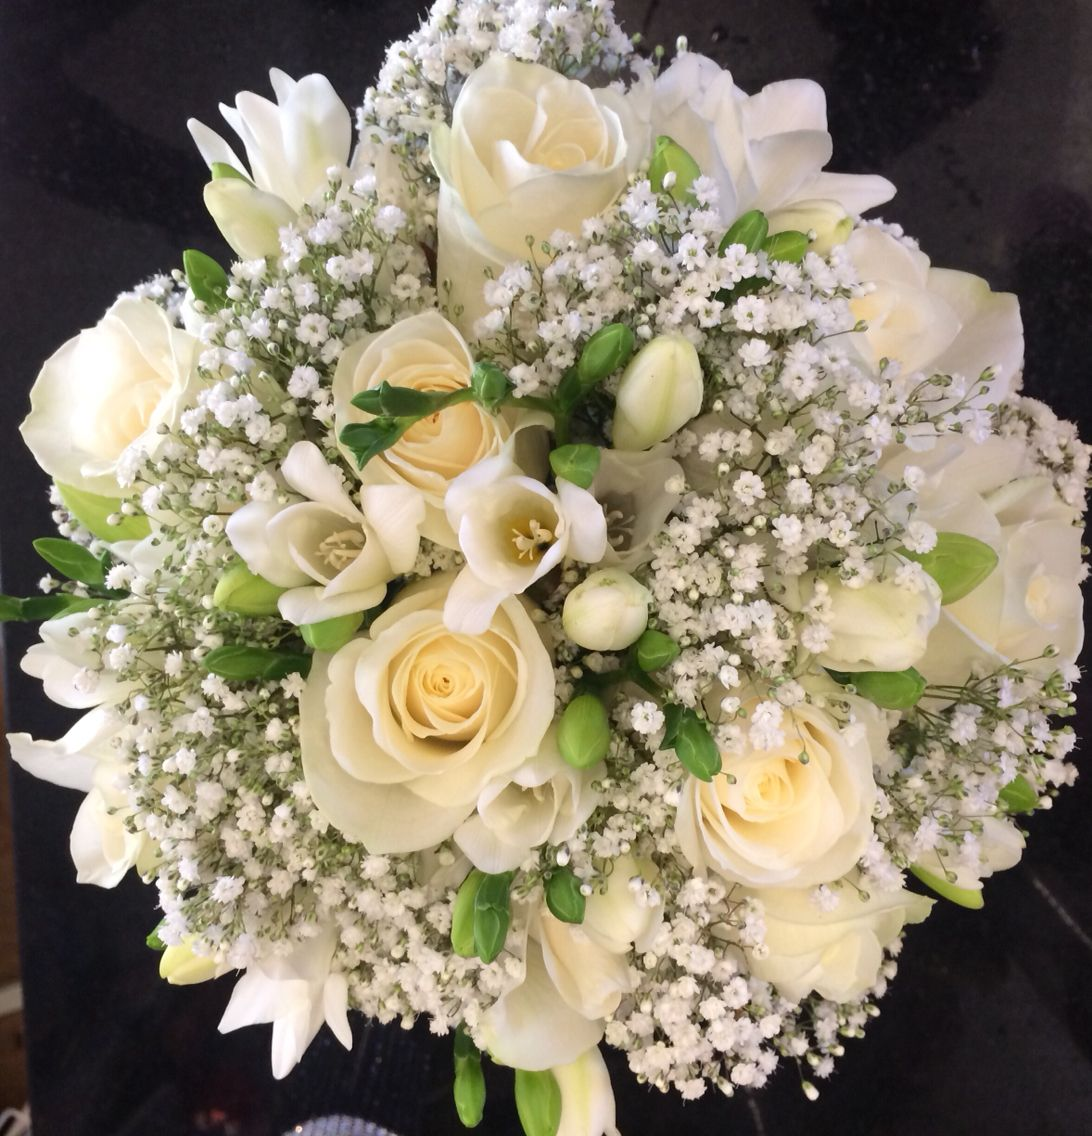 freesia roses and gypsophila cream and green bouquet baby 39 s breath and roses wedding flower. Black Bedroom Furniture Sets. Home Design Ideas